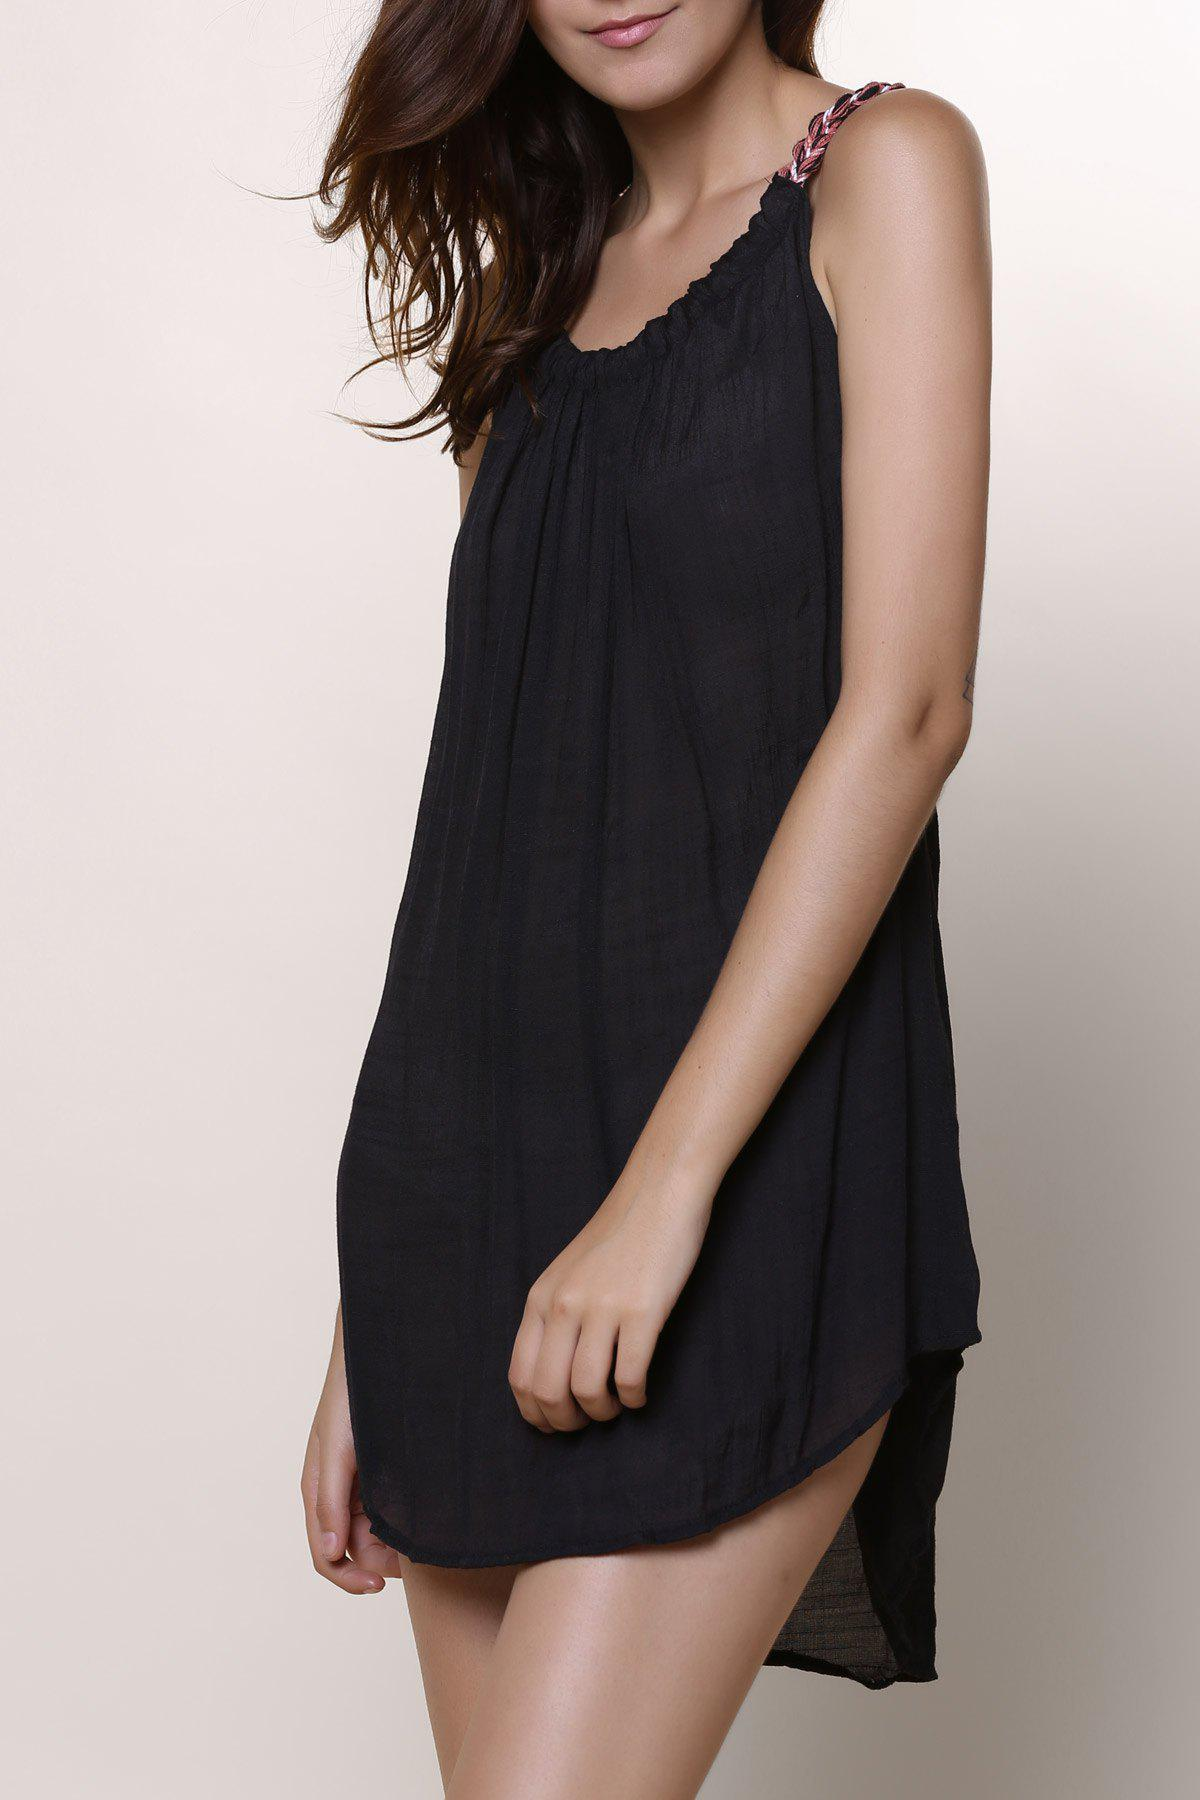 Stylish Round Neck Sleeveless Black Chiffon Dress For Women